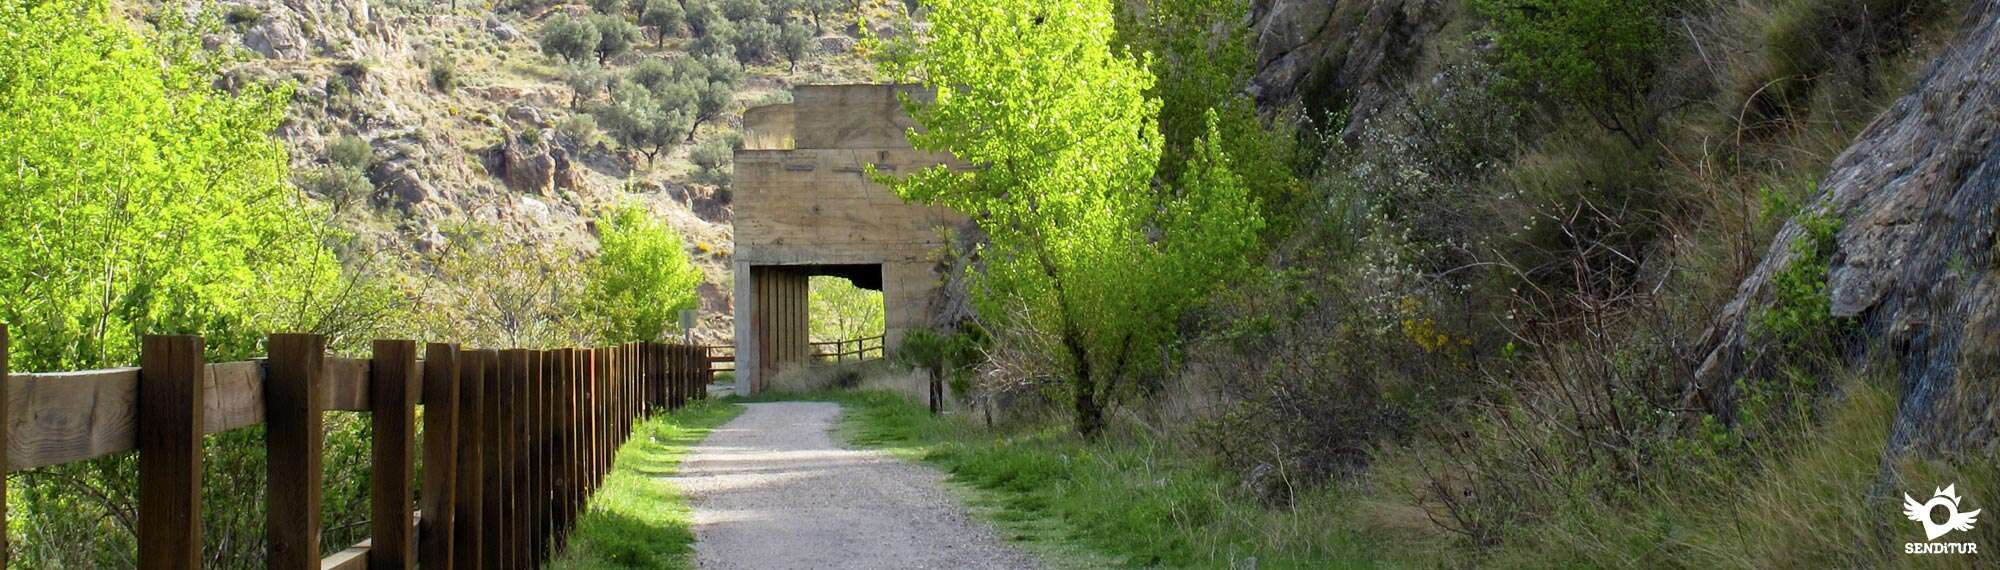 Greenway of the Cidacos. Section 3 Arnedo-Arnedillo